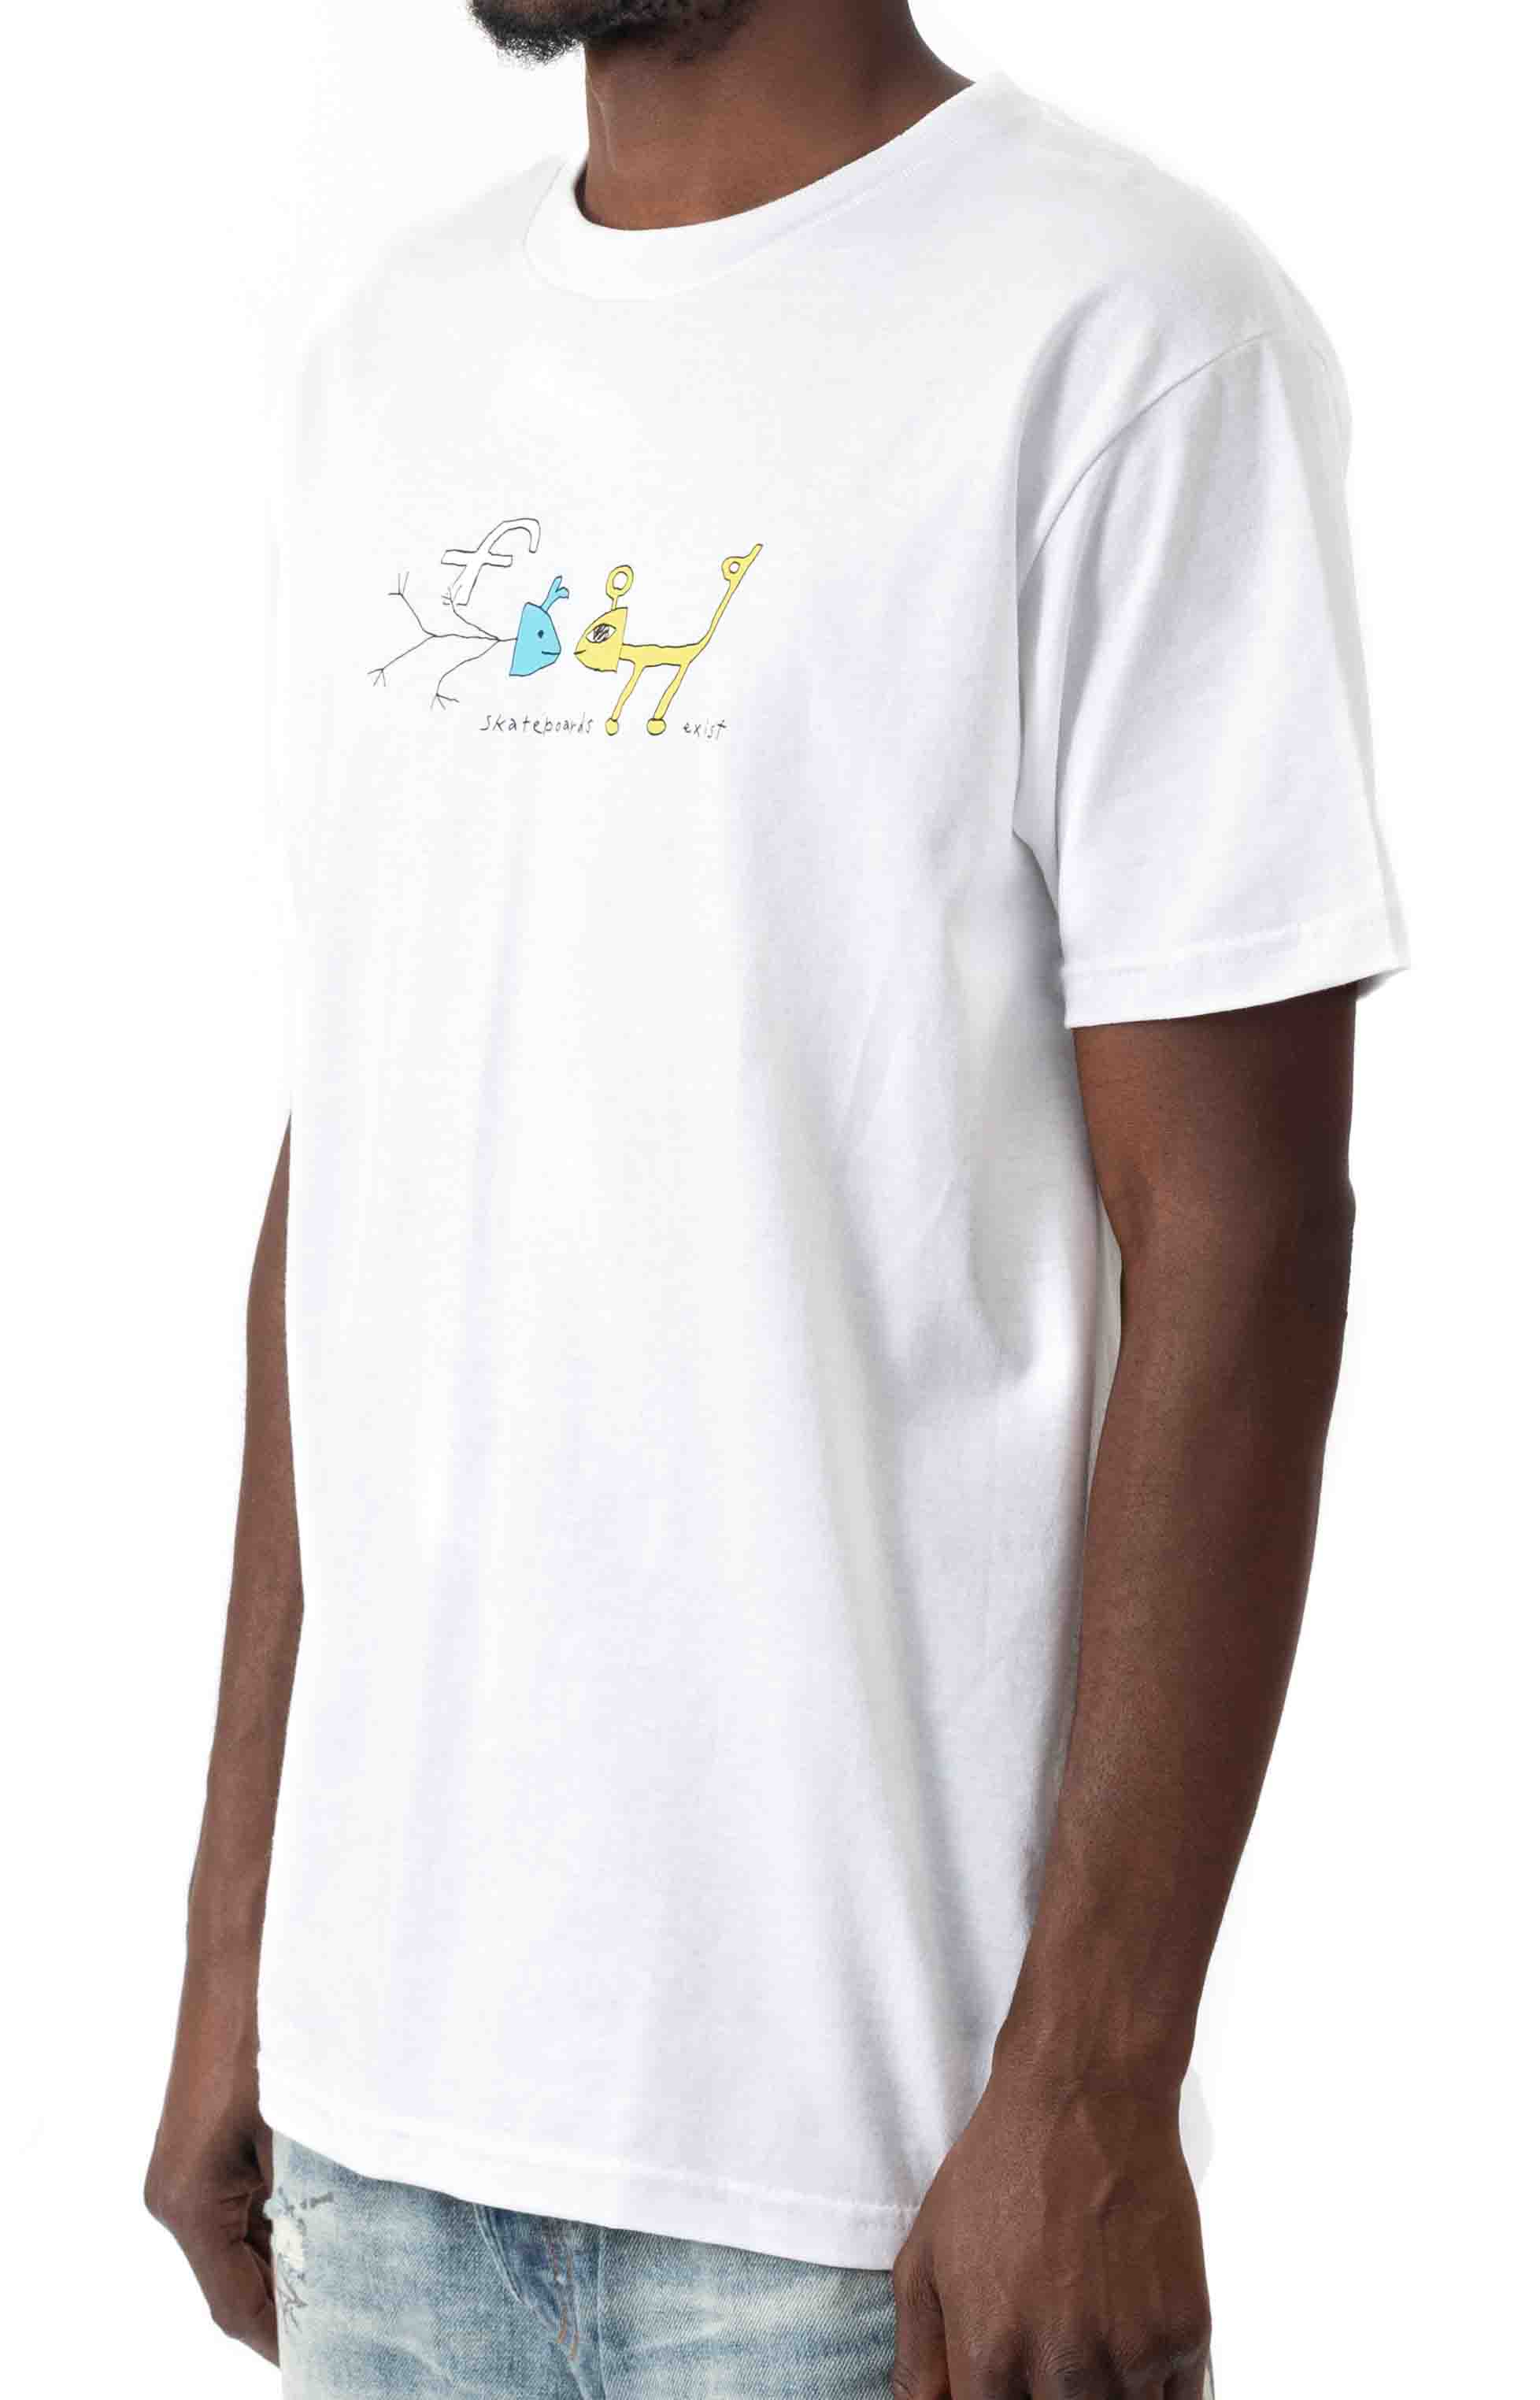 Frog Exists! T-Shirt - White  2